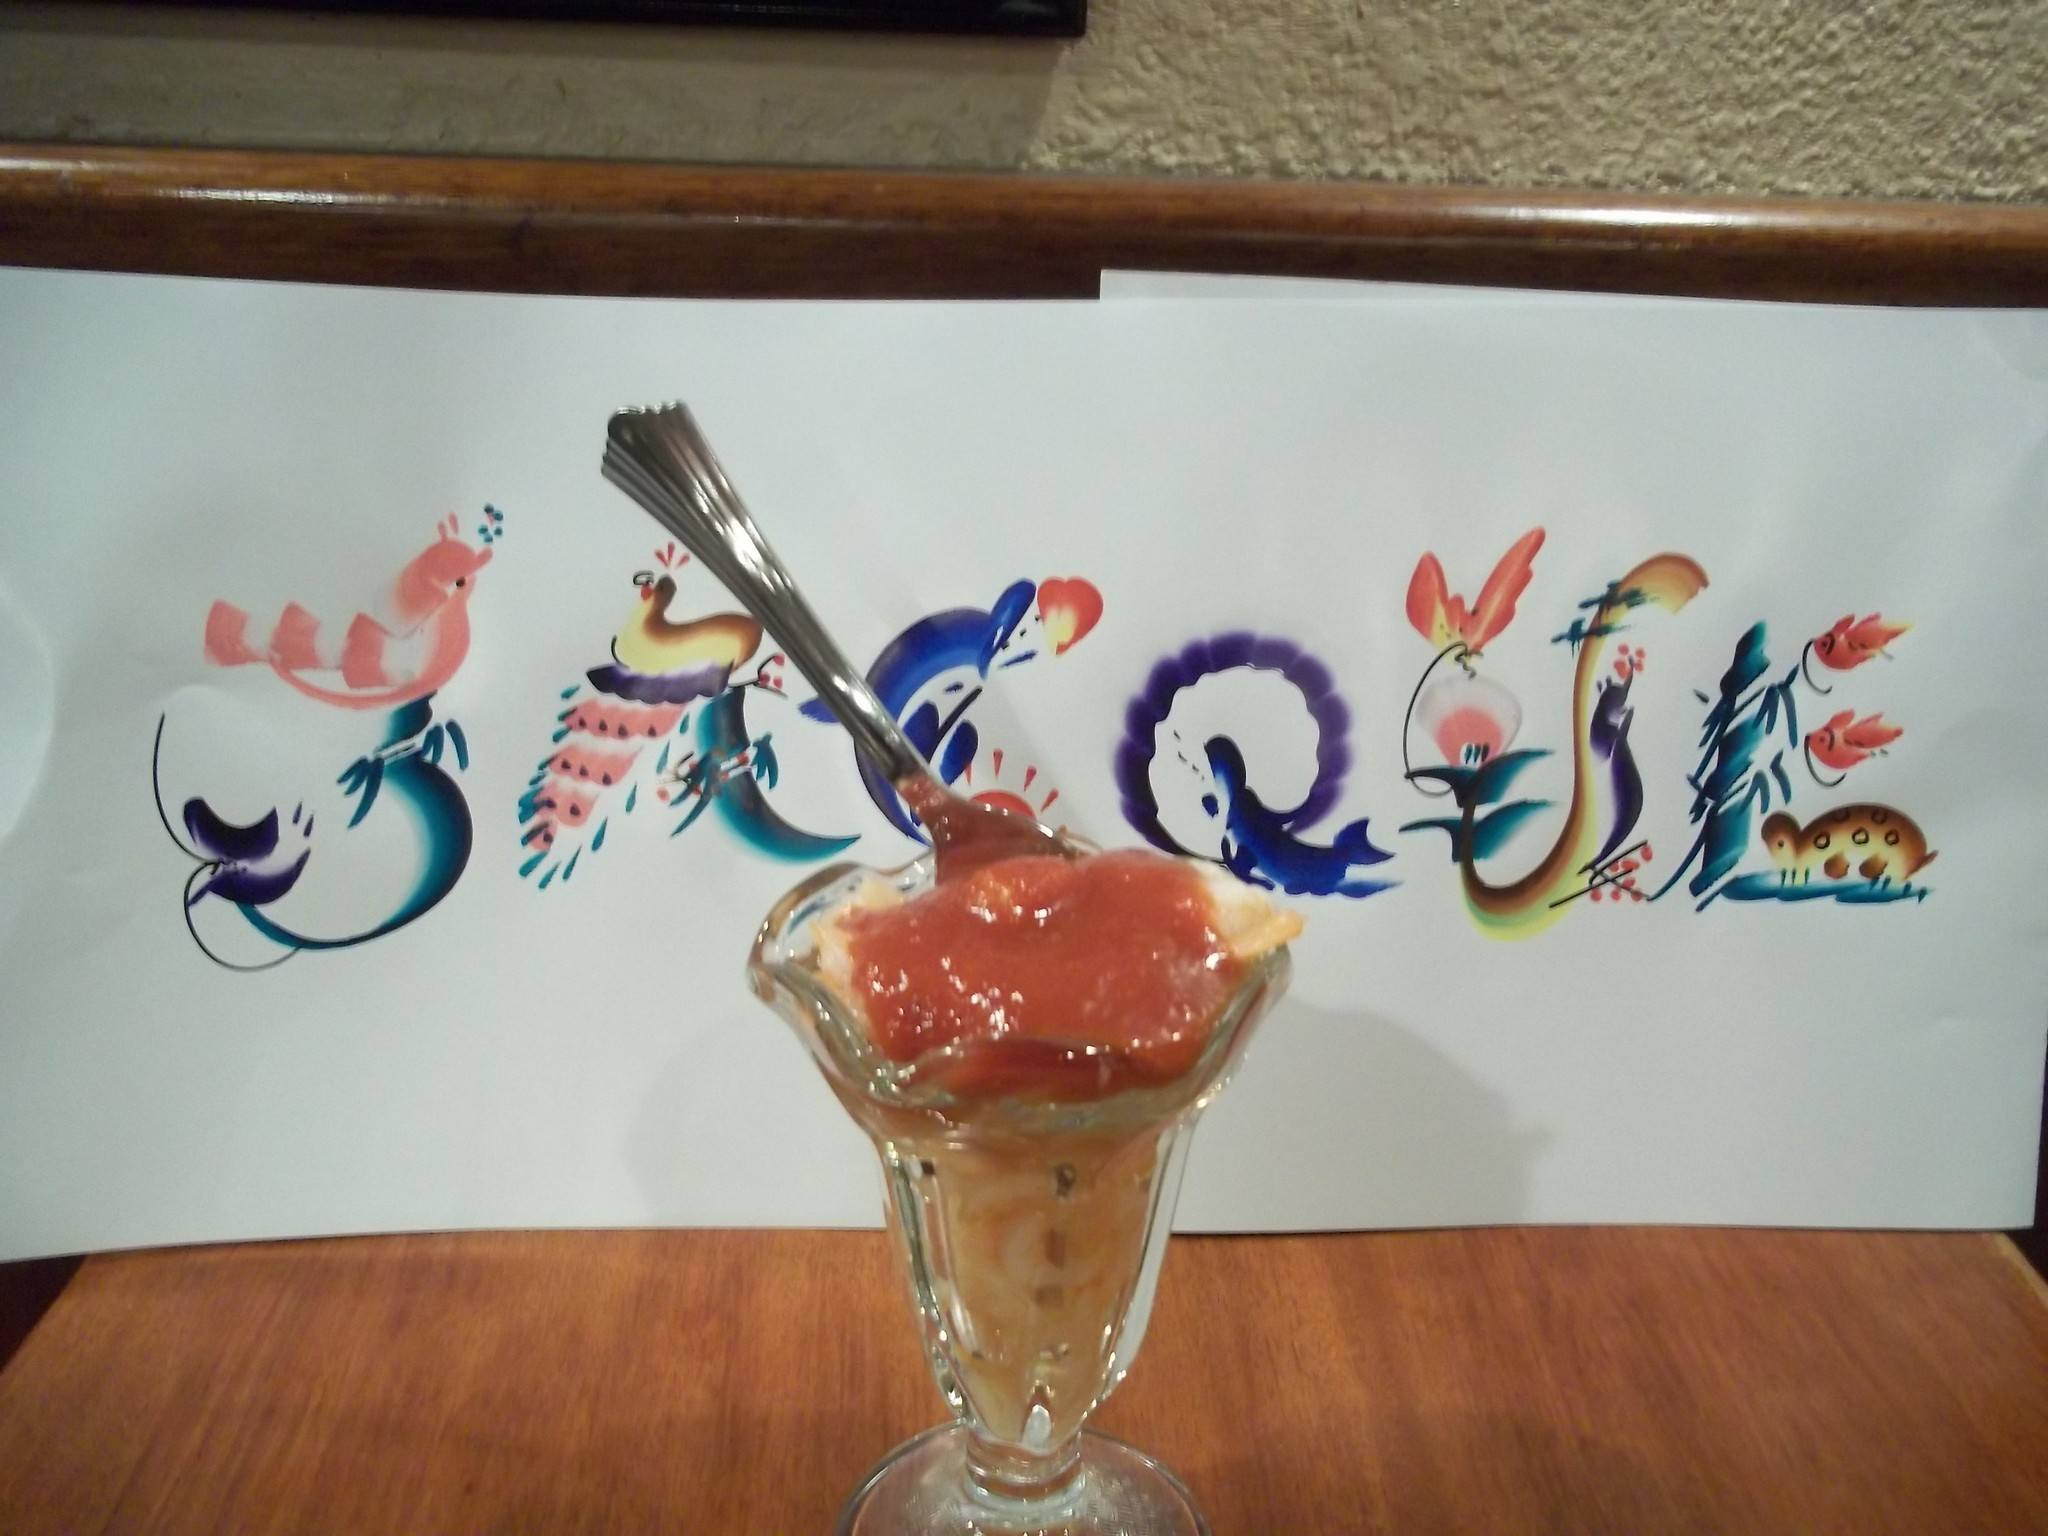 American Cuisine 10 Types of Las Vegas Dishes That You Must Try